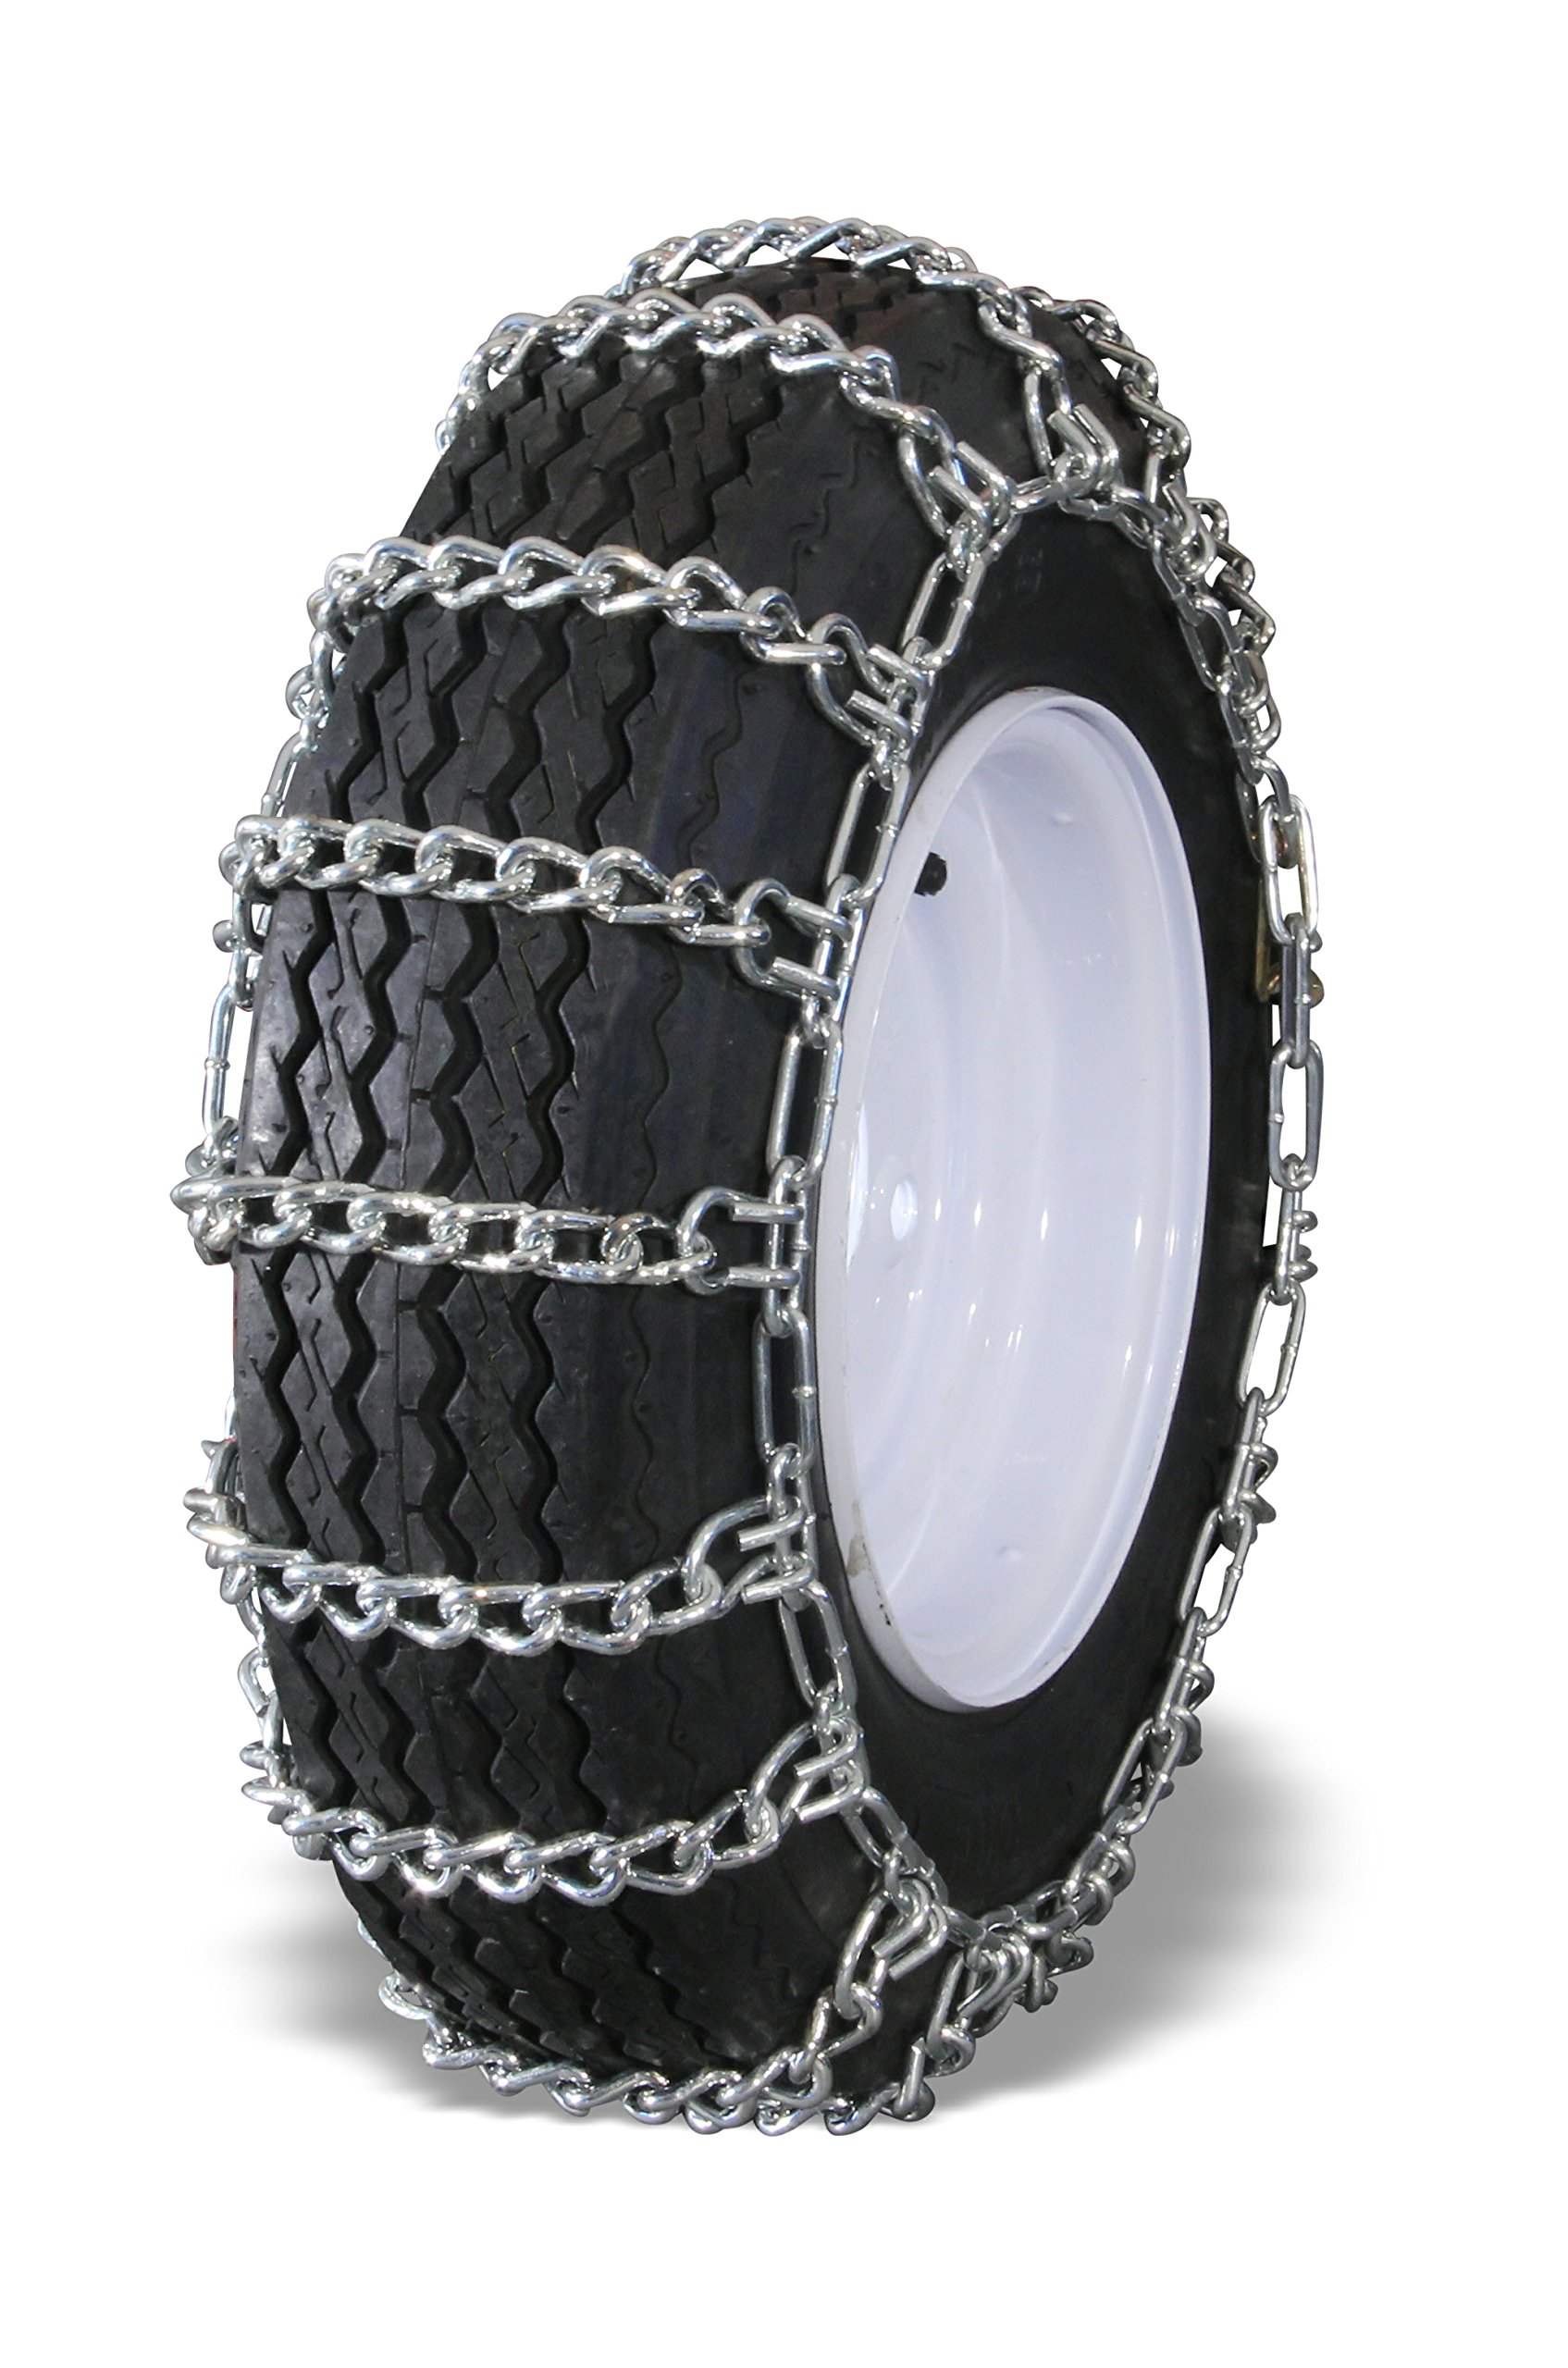 MaxTrac Peerless MTL-309 Garden Tractor 2 Link Ladder Style Tire Chains 13x5.00-6 by MaxTrac